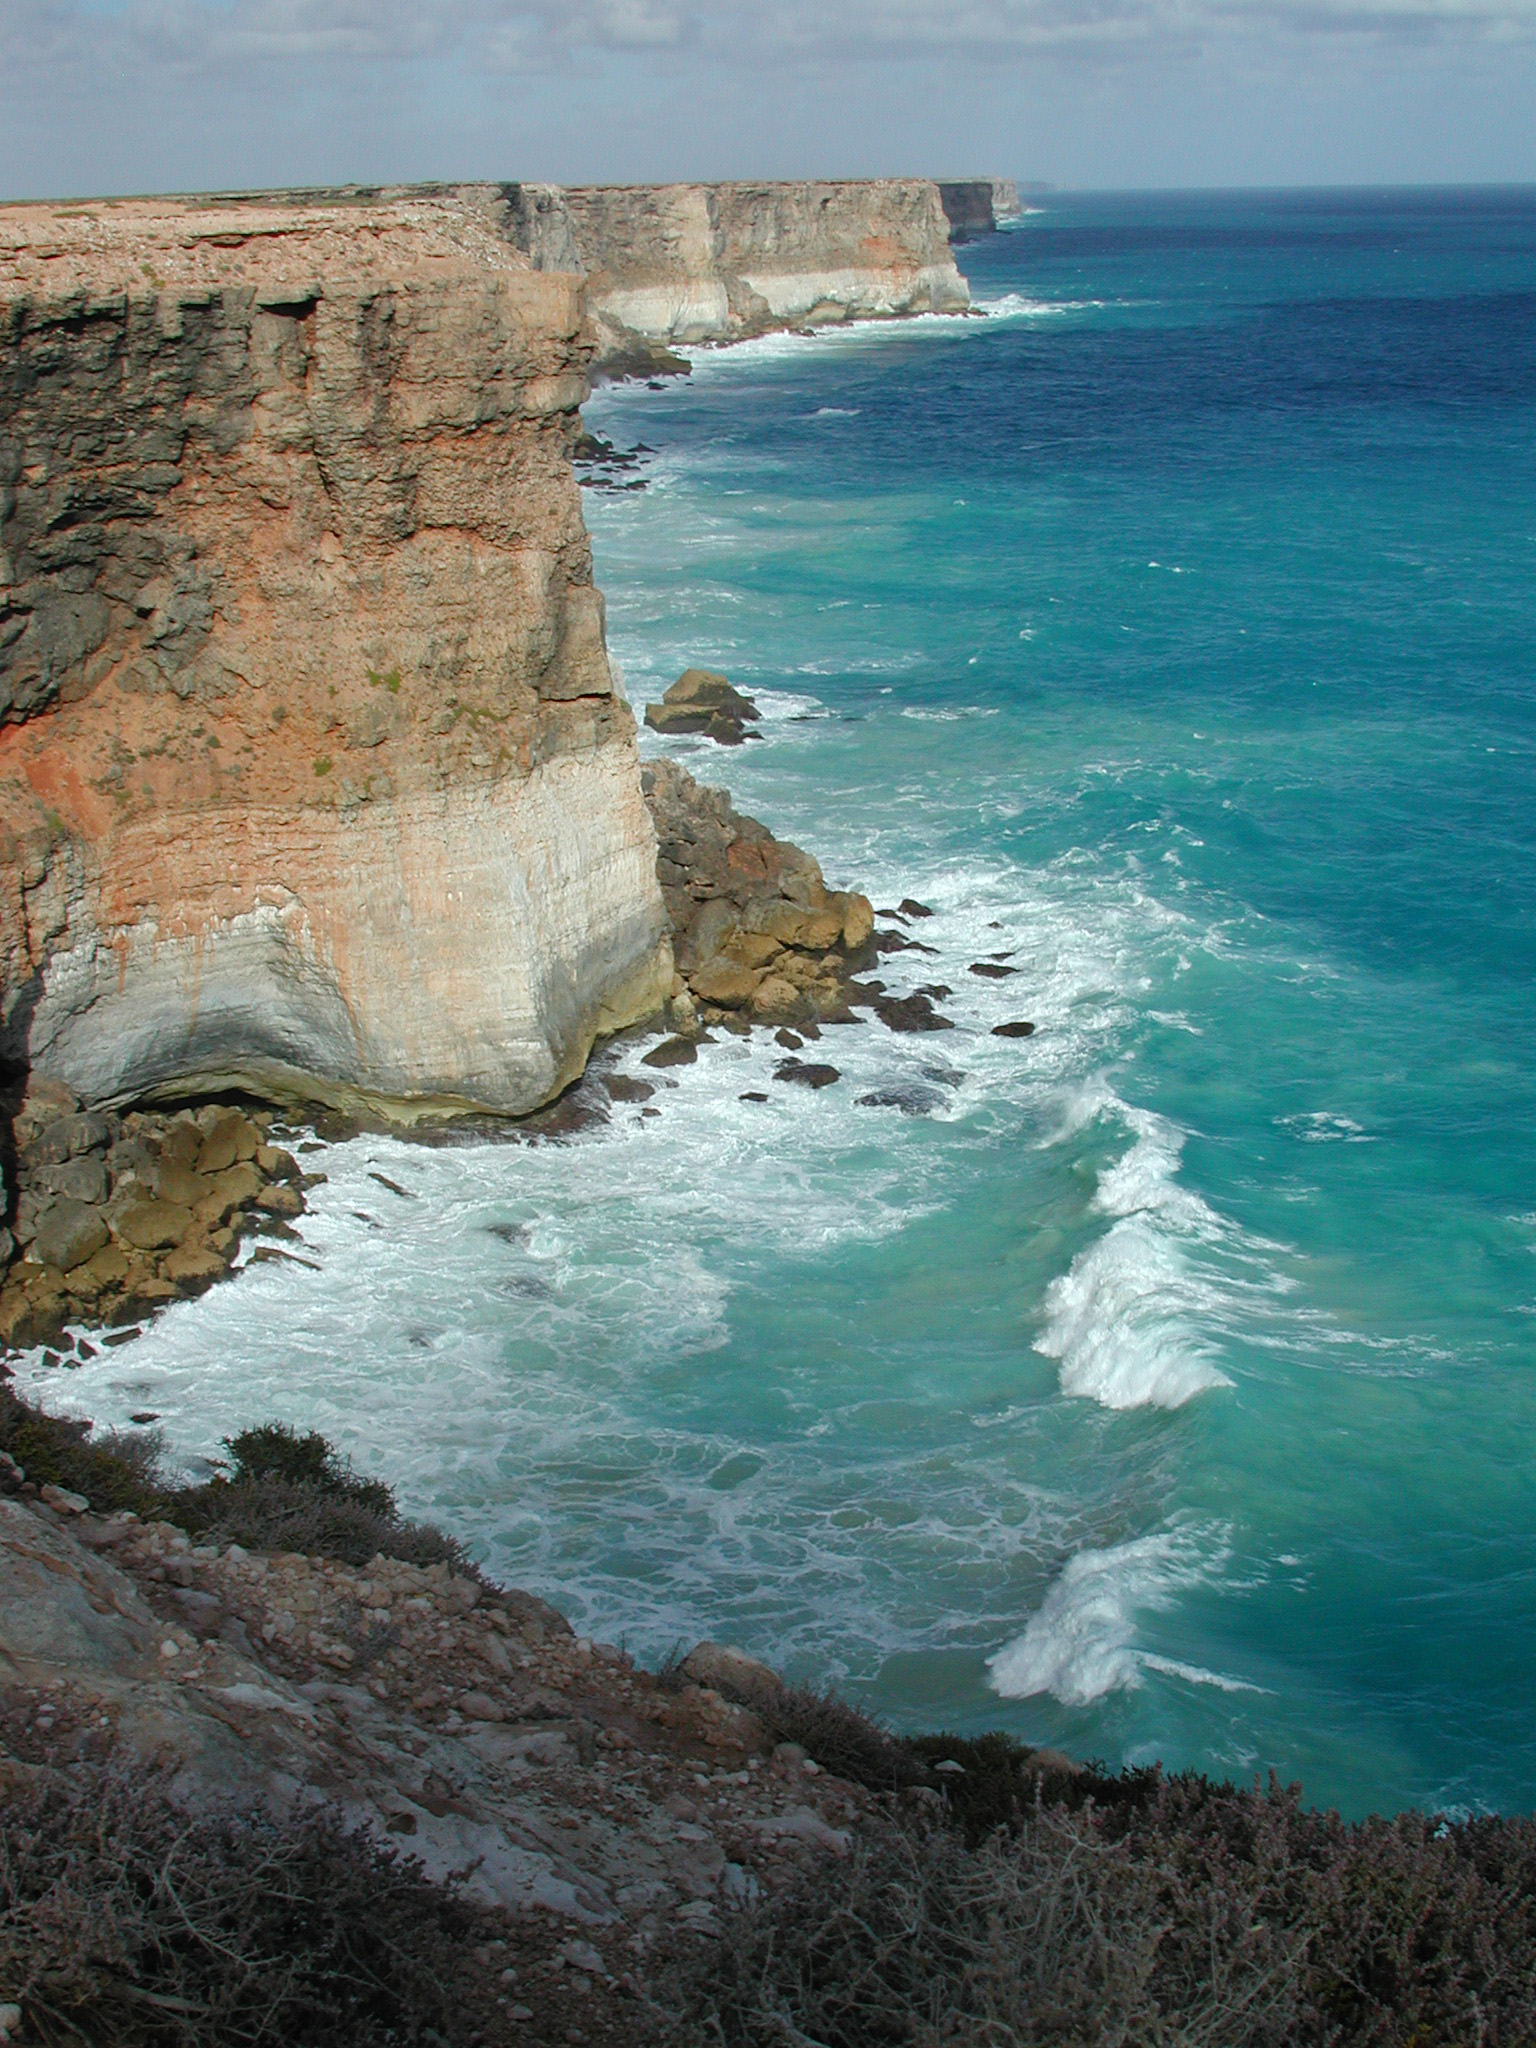 Rugged Great Australian Bight coastline